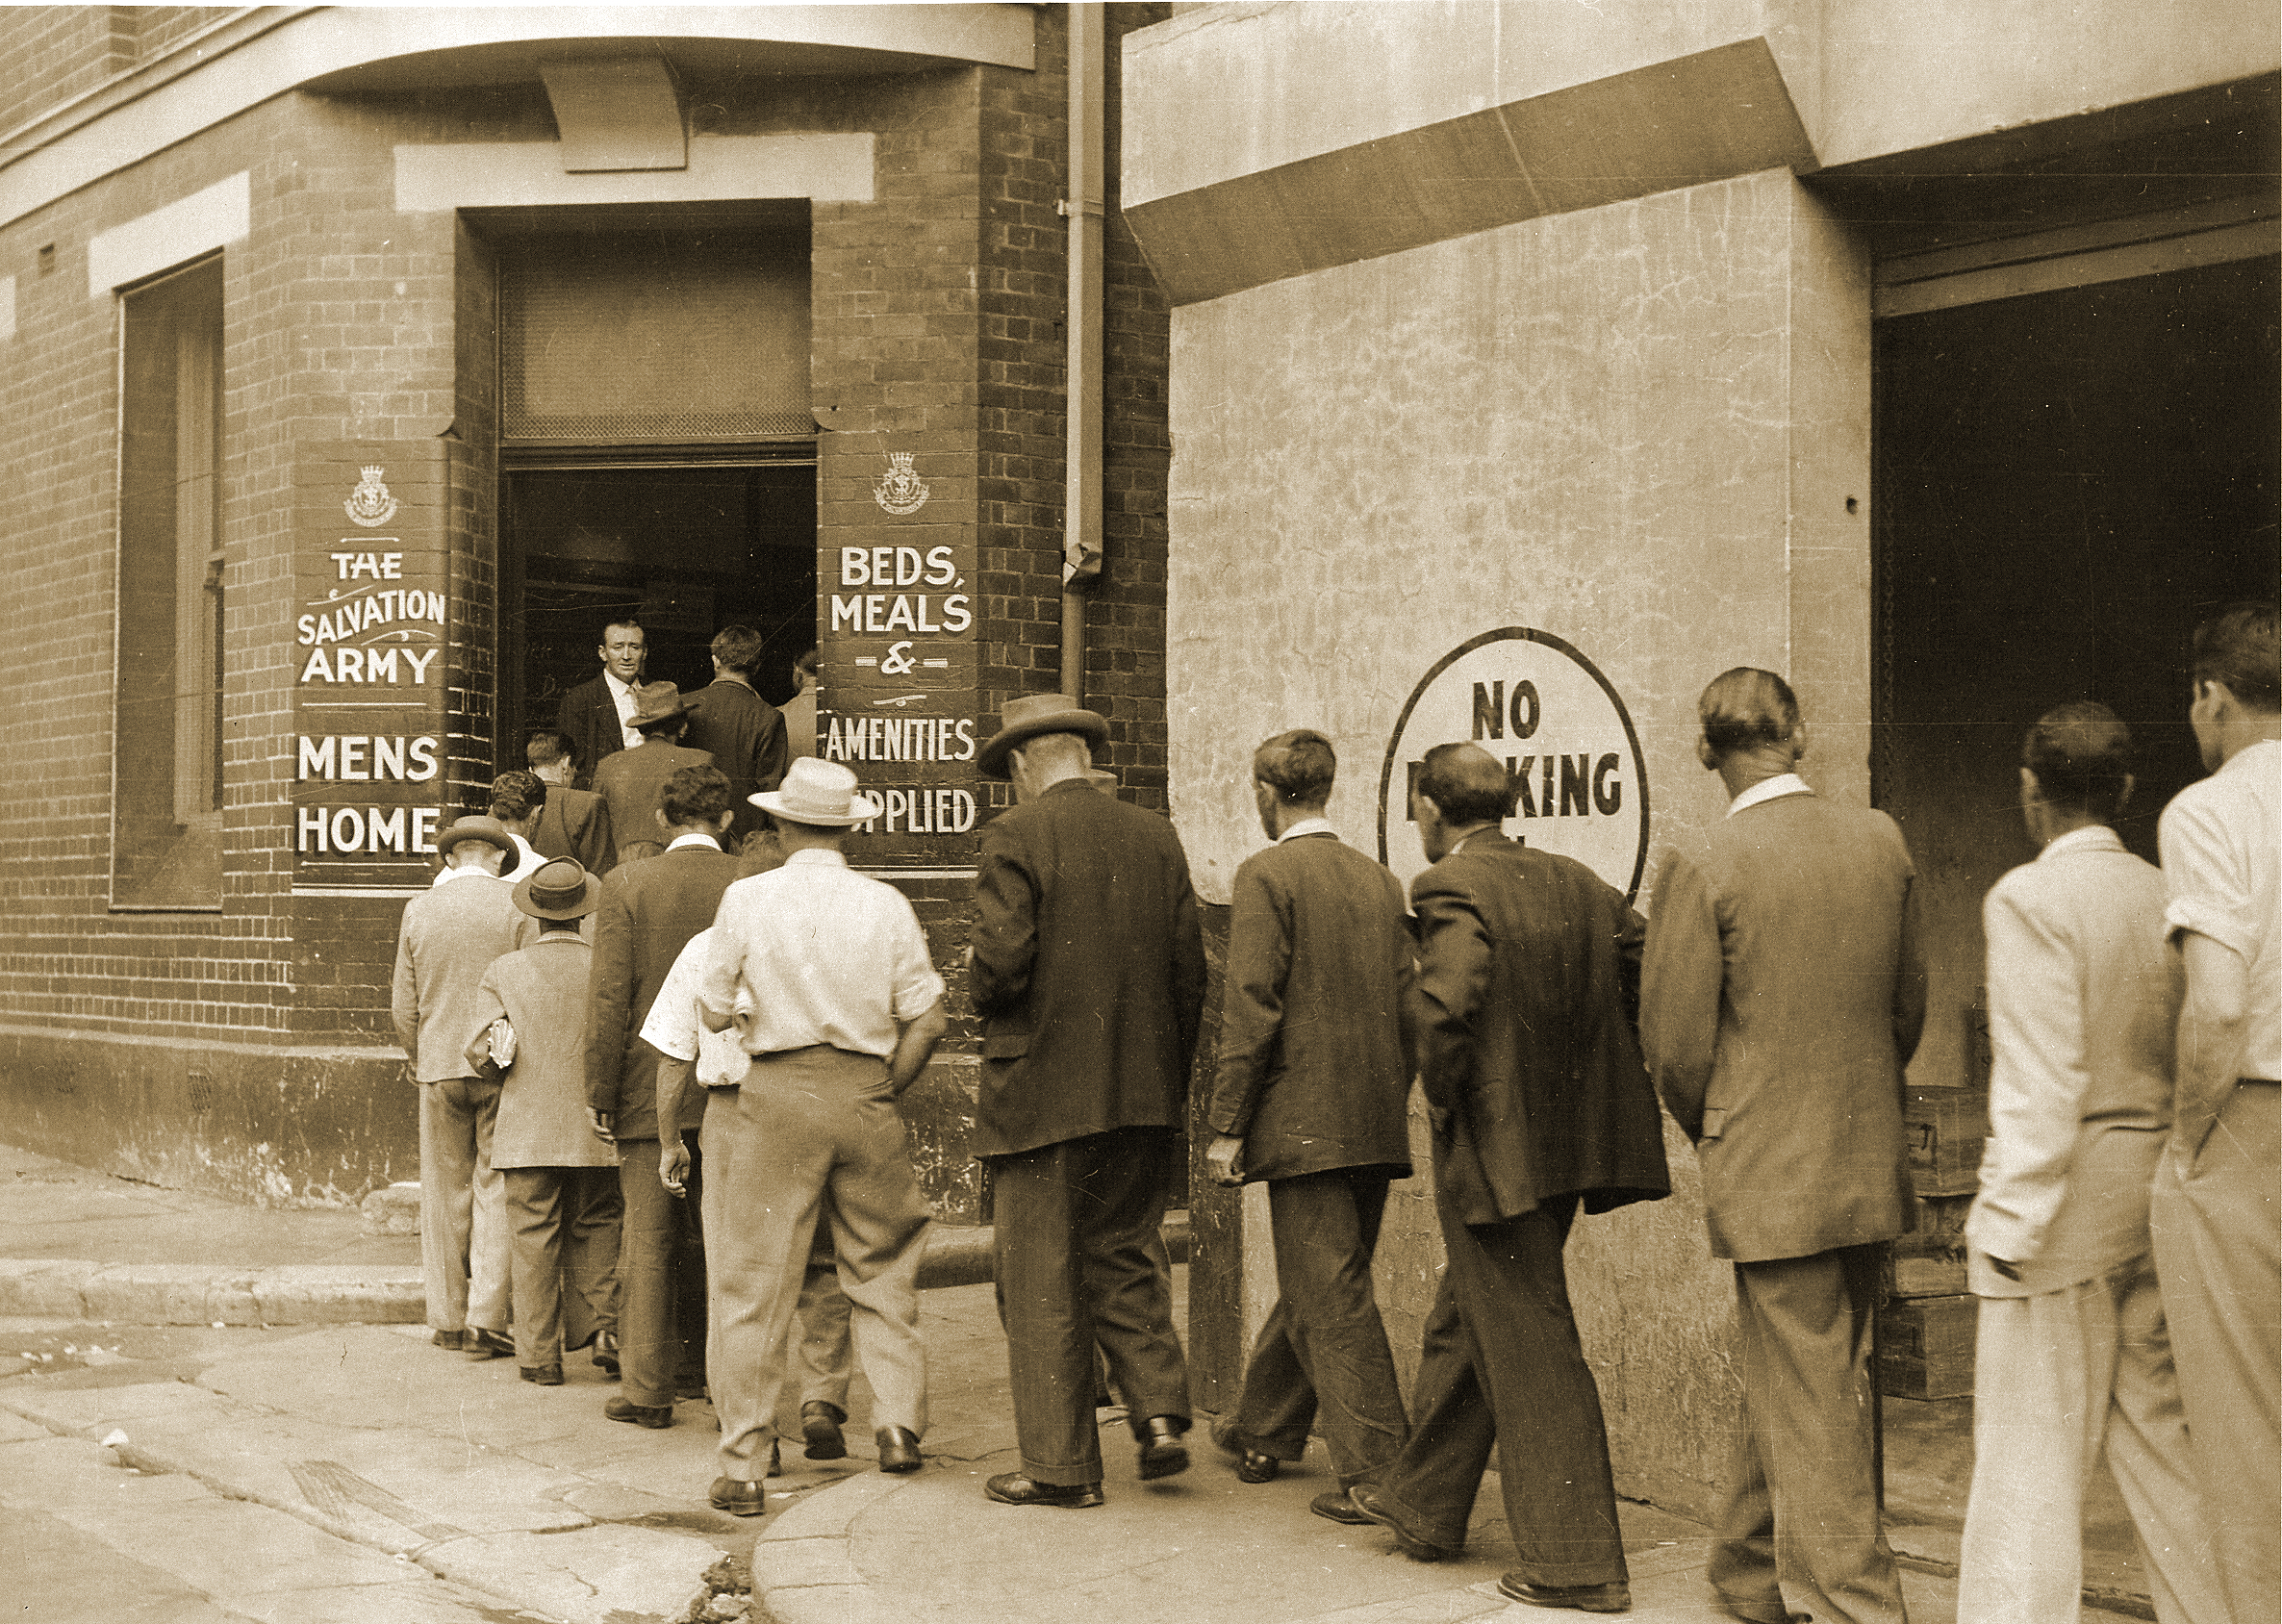 Men line up outside The Salvation Army's Foster House